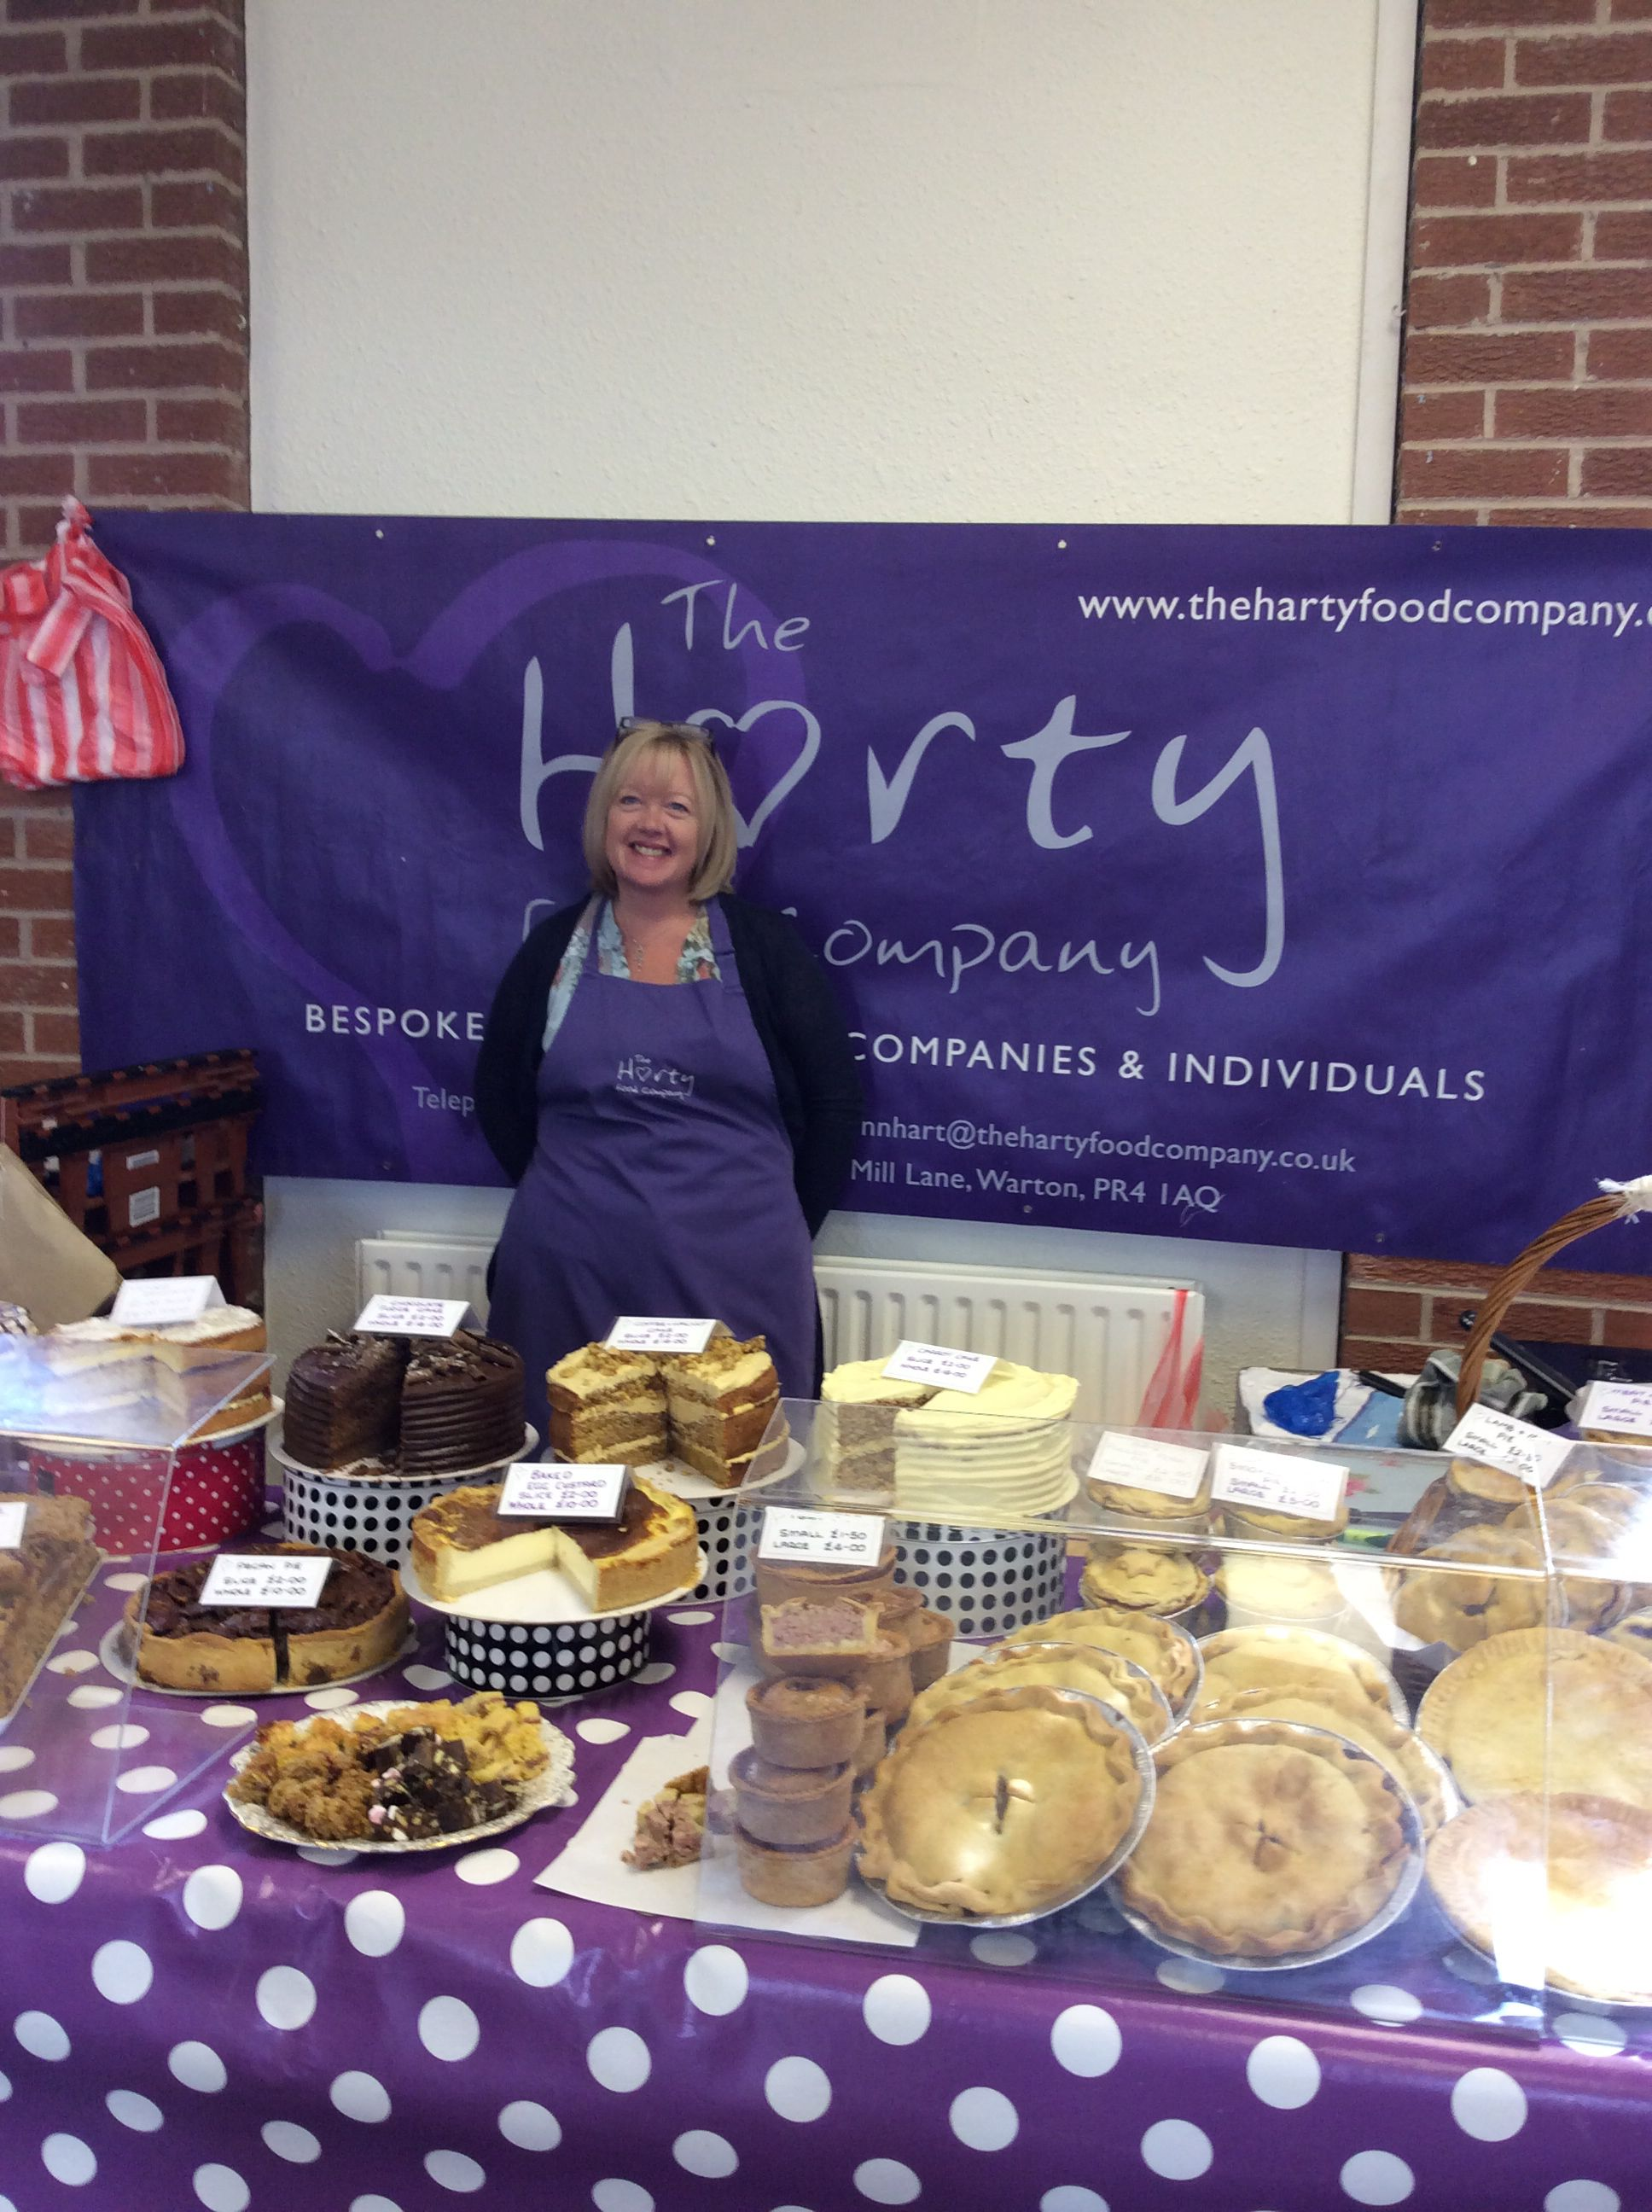 Lynne from the Harty Food Company